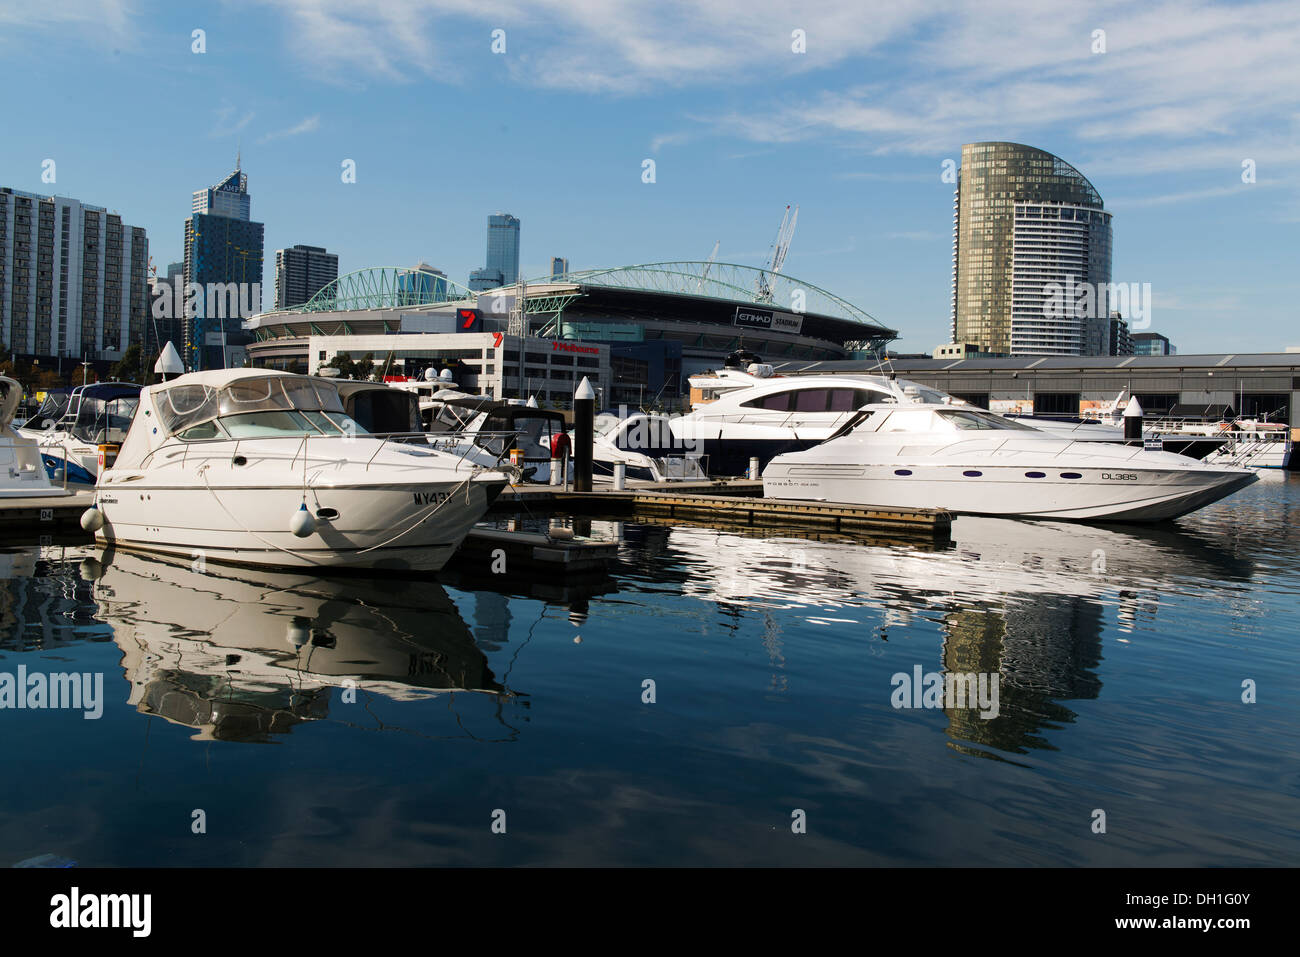 Motor boats moored in Melbourne's Docklands precinct with the city skyline beyond. - Stock Image